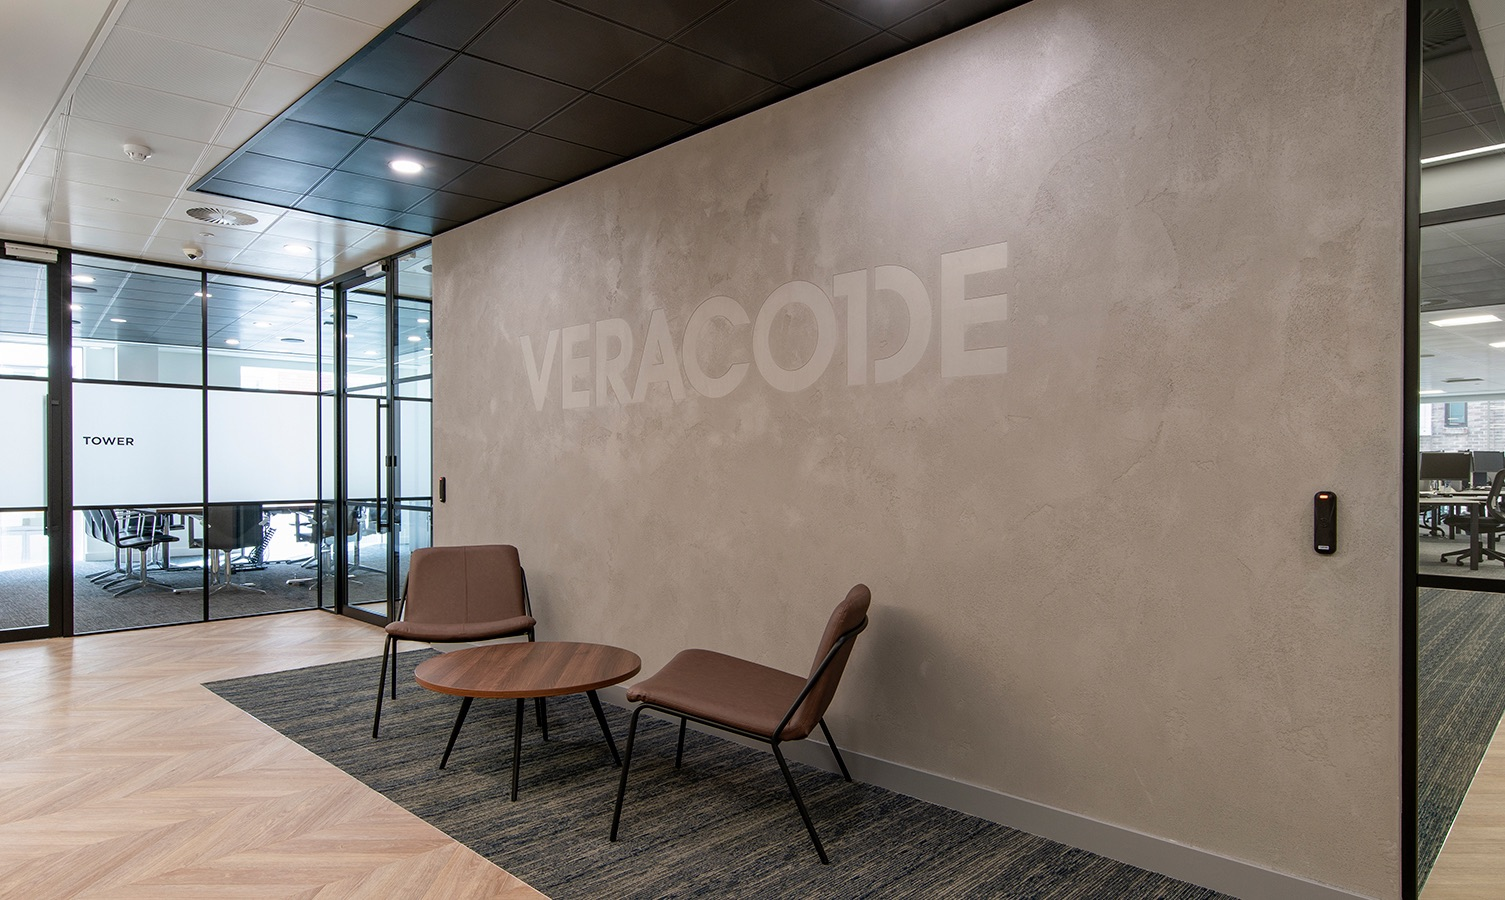 veracode-london-office-6